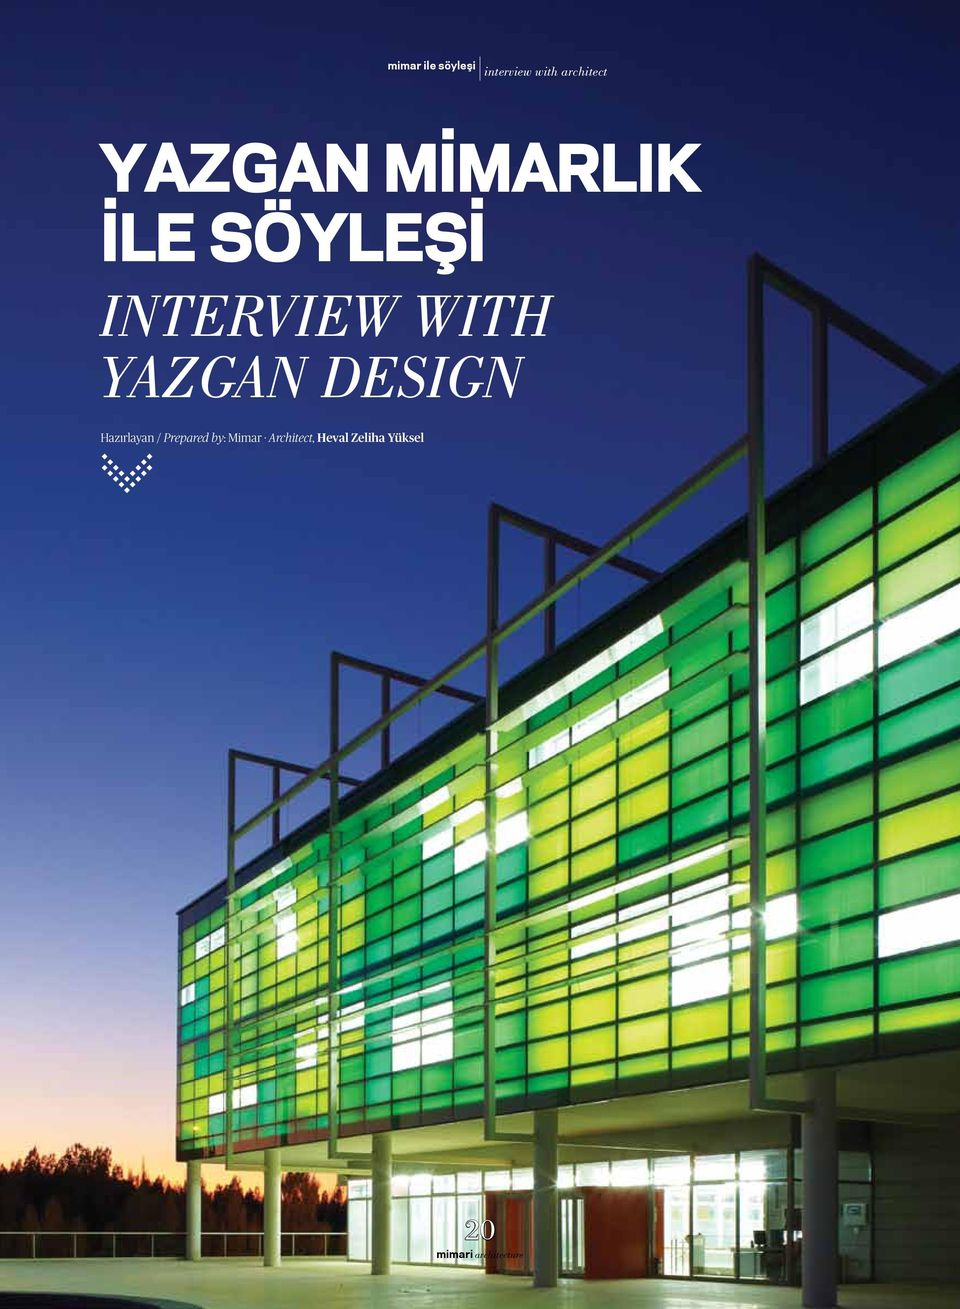 INTERVIEW WITH YAZGAN DESIGN Hazırlayan /